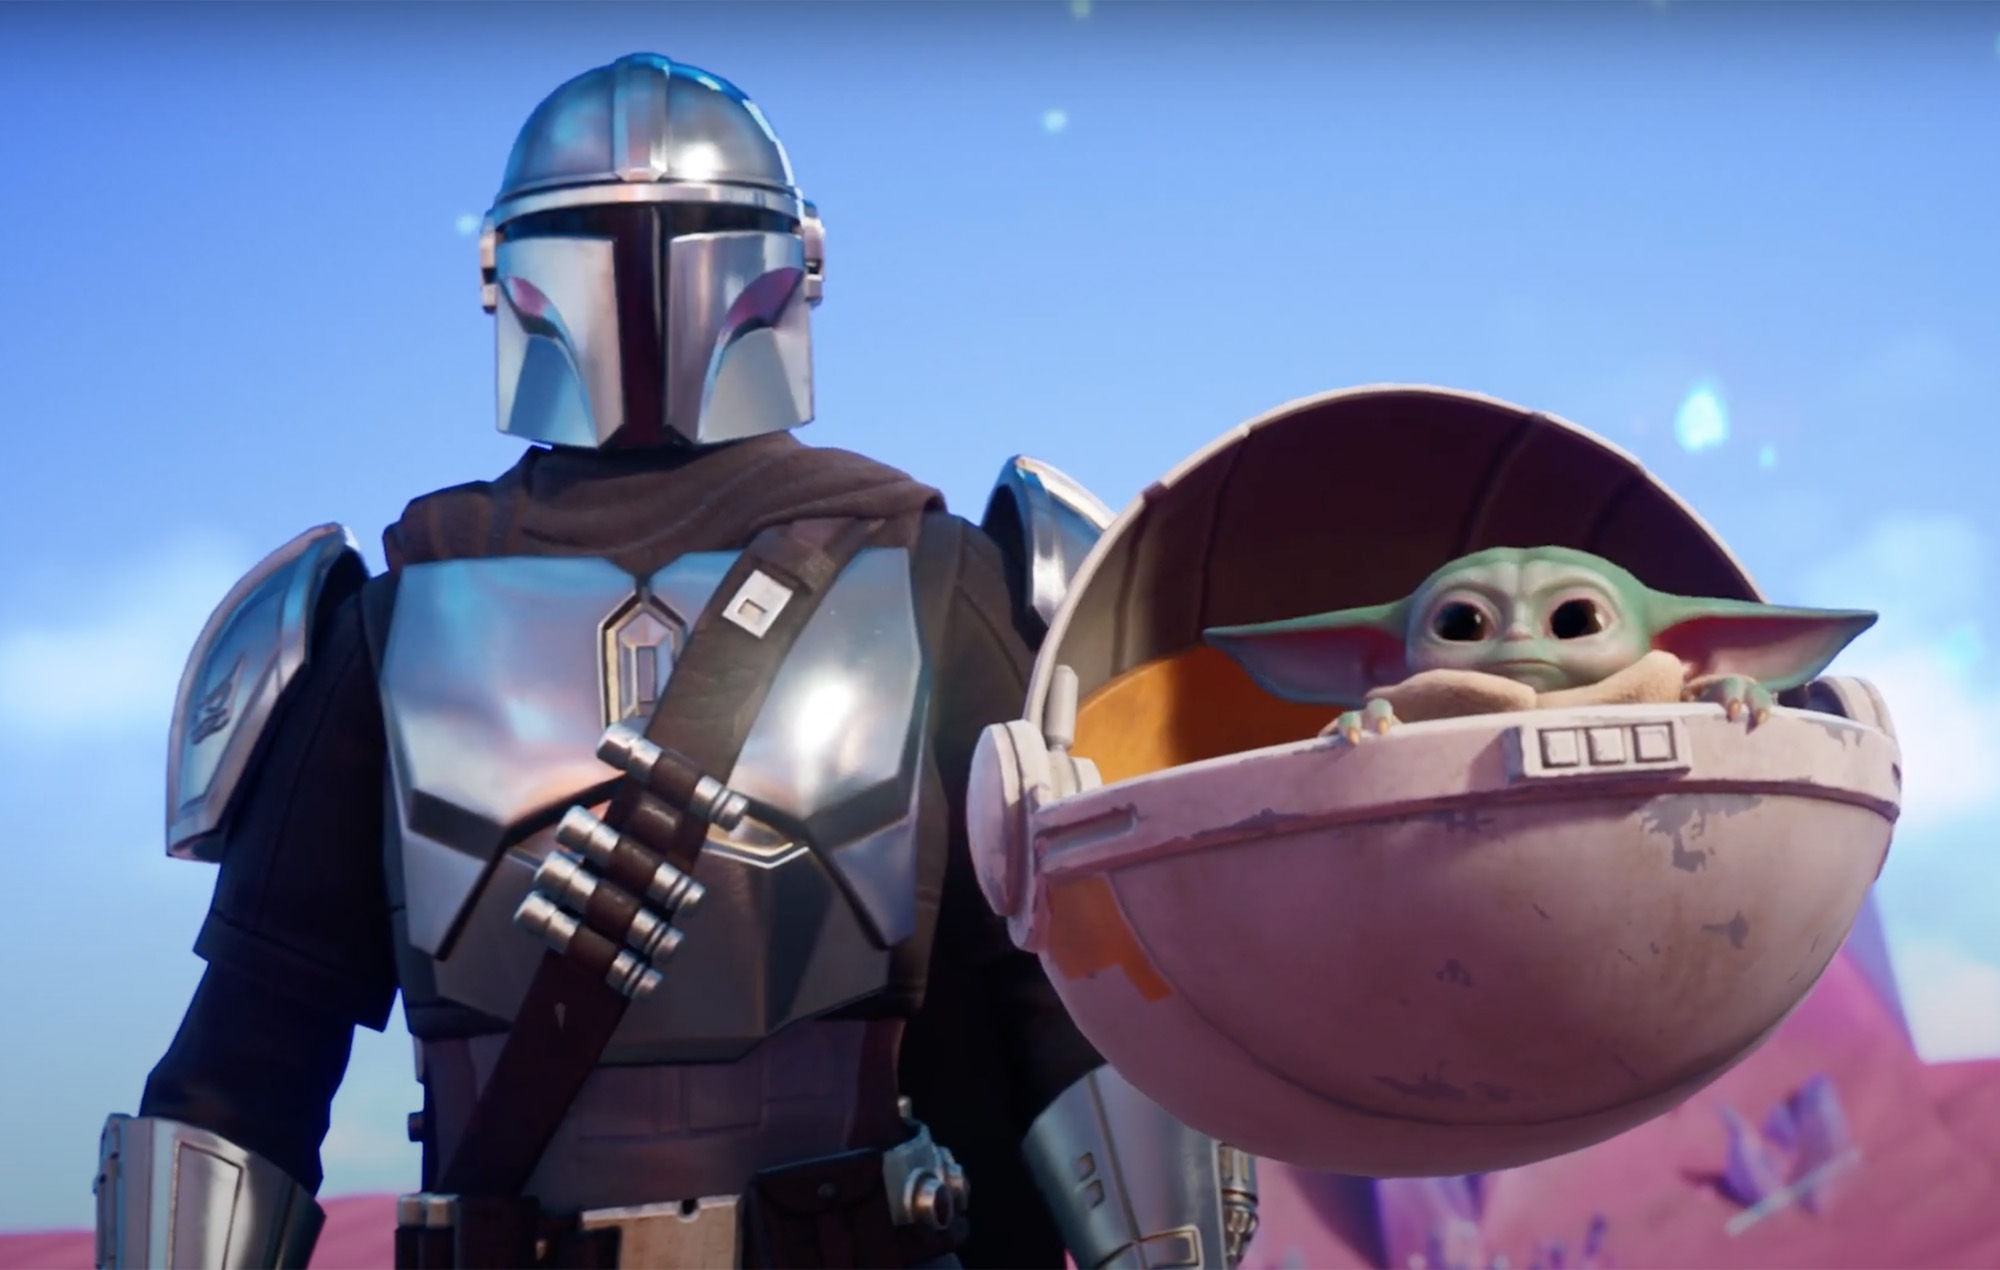 Fortnite' Season 5 features The Mandalorian and Baby Yoda